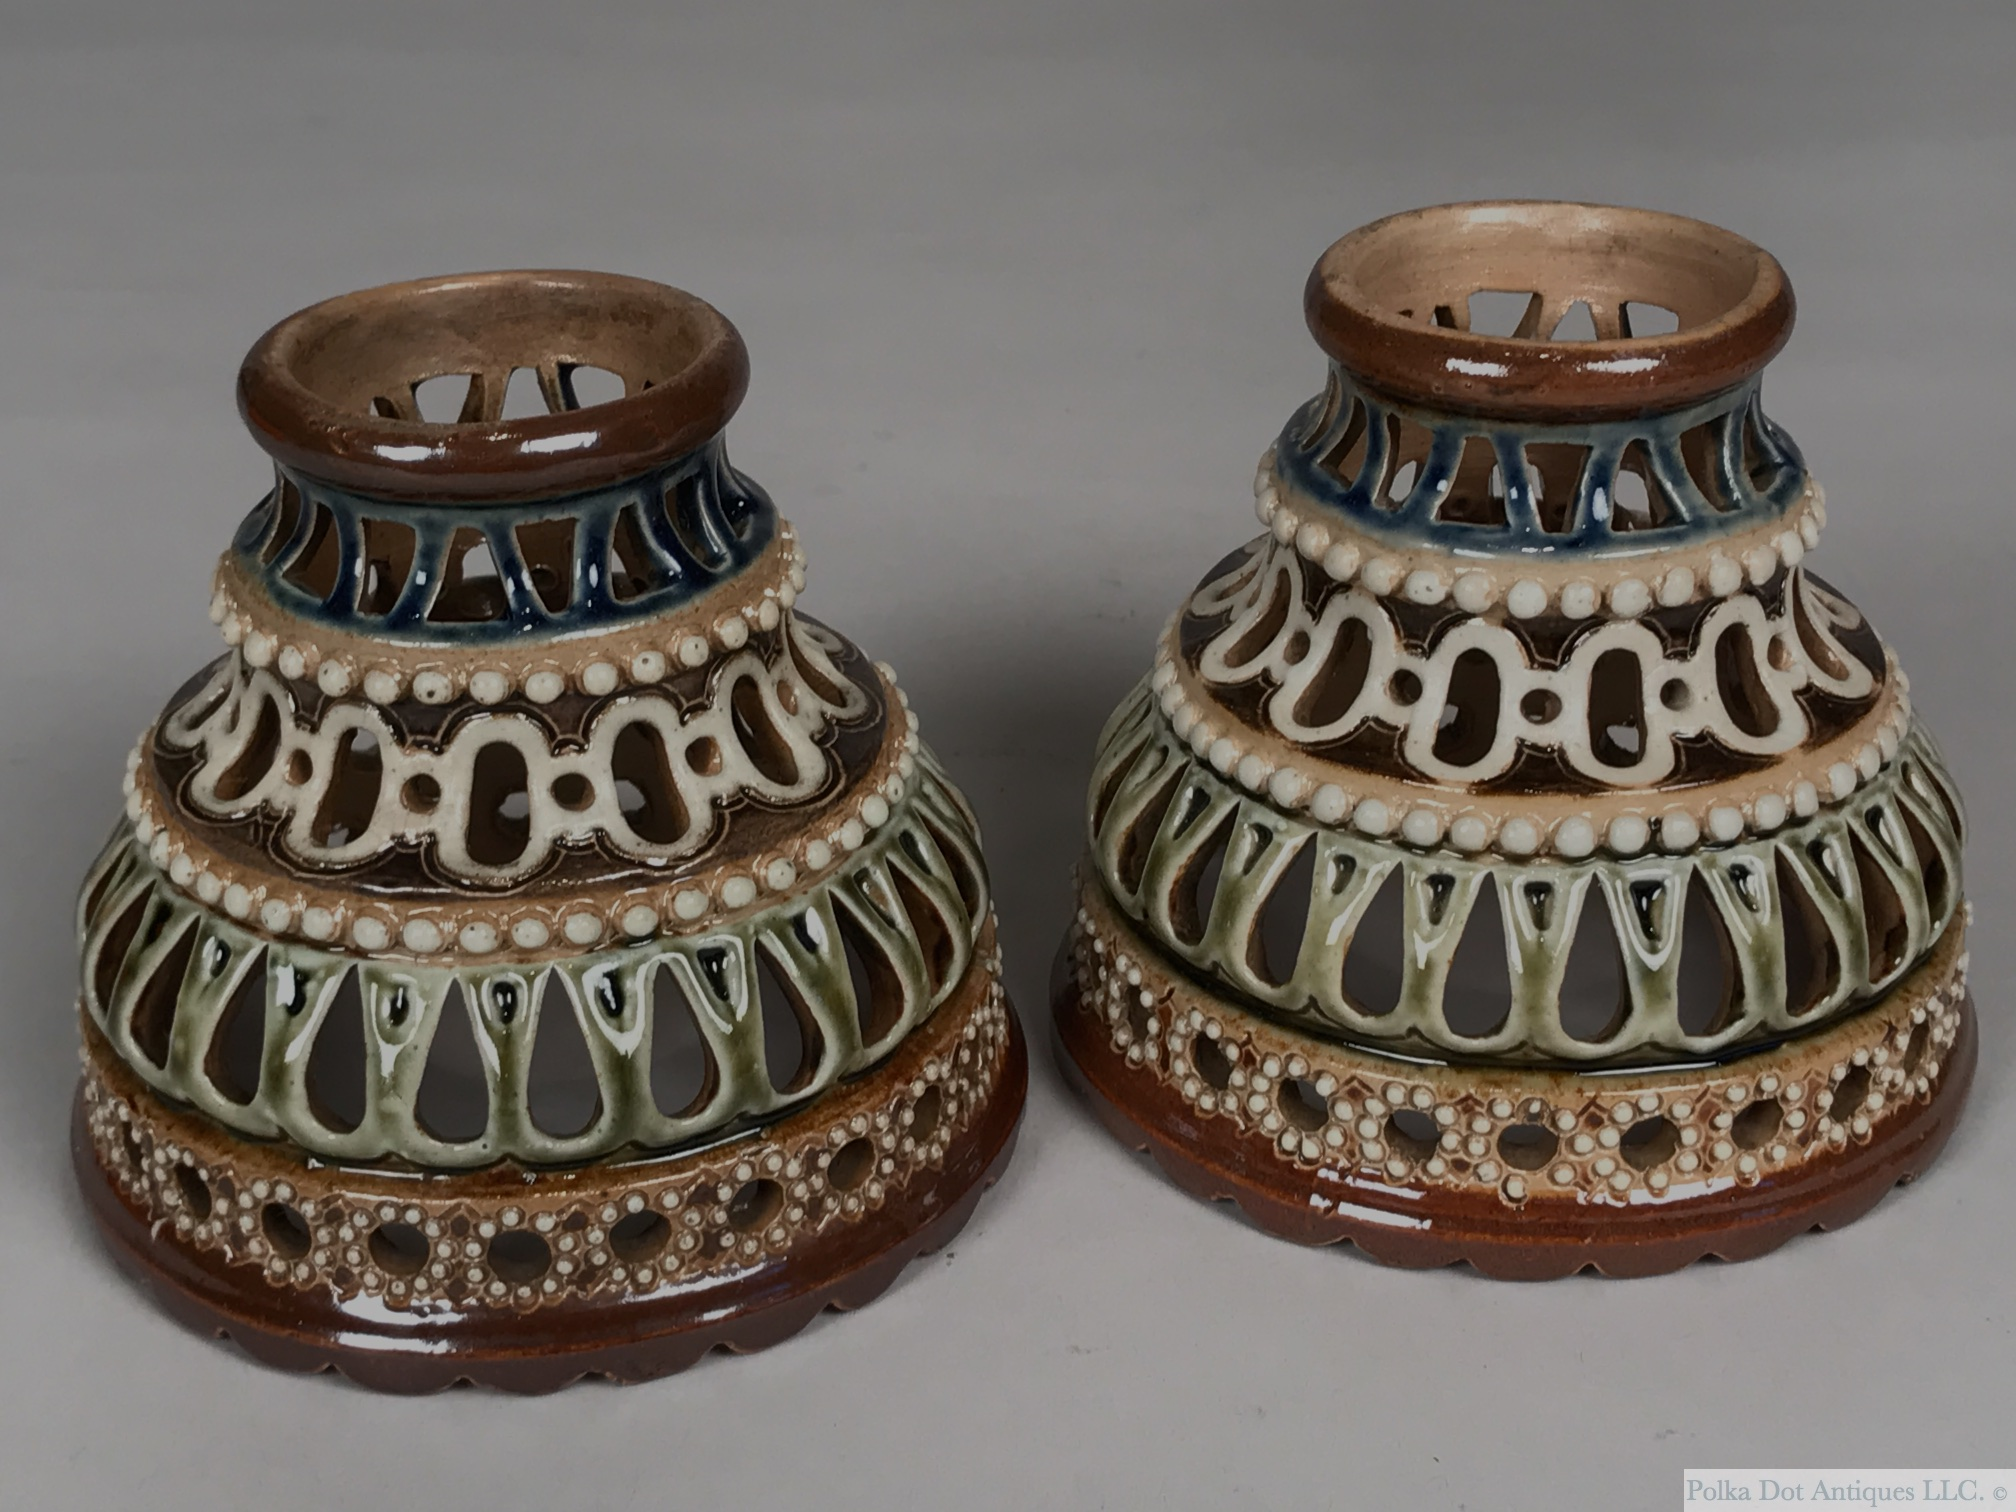 "Pair of Doulton Salt Glazed Stoneware Reticulated Lamp Shades, 1880-1900, each of dome form with four pierced bands and beaded bands in between, incised 'W.' 3½"" high.   RPW0036 - $220"